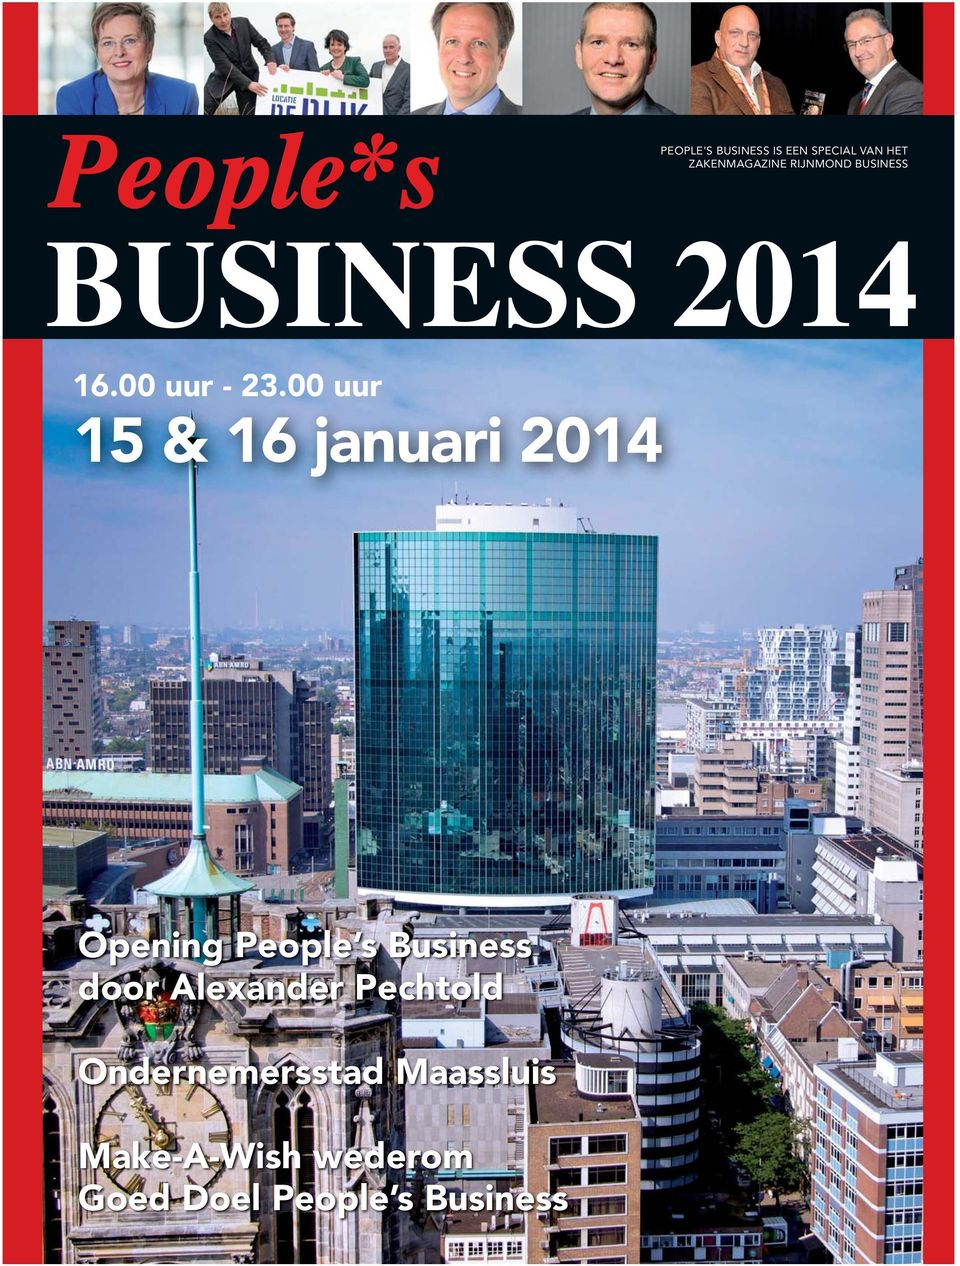 00 uur 15 & 16 januari 2014 Opening People s Business door